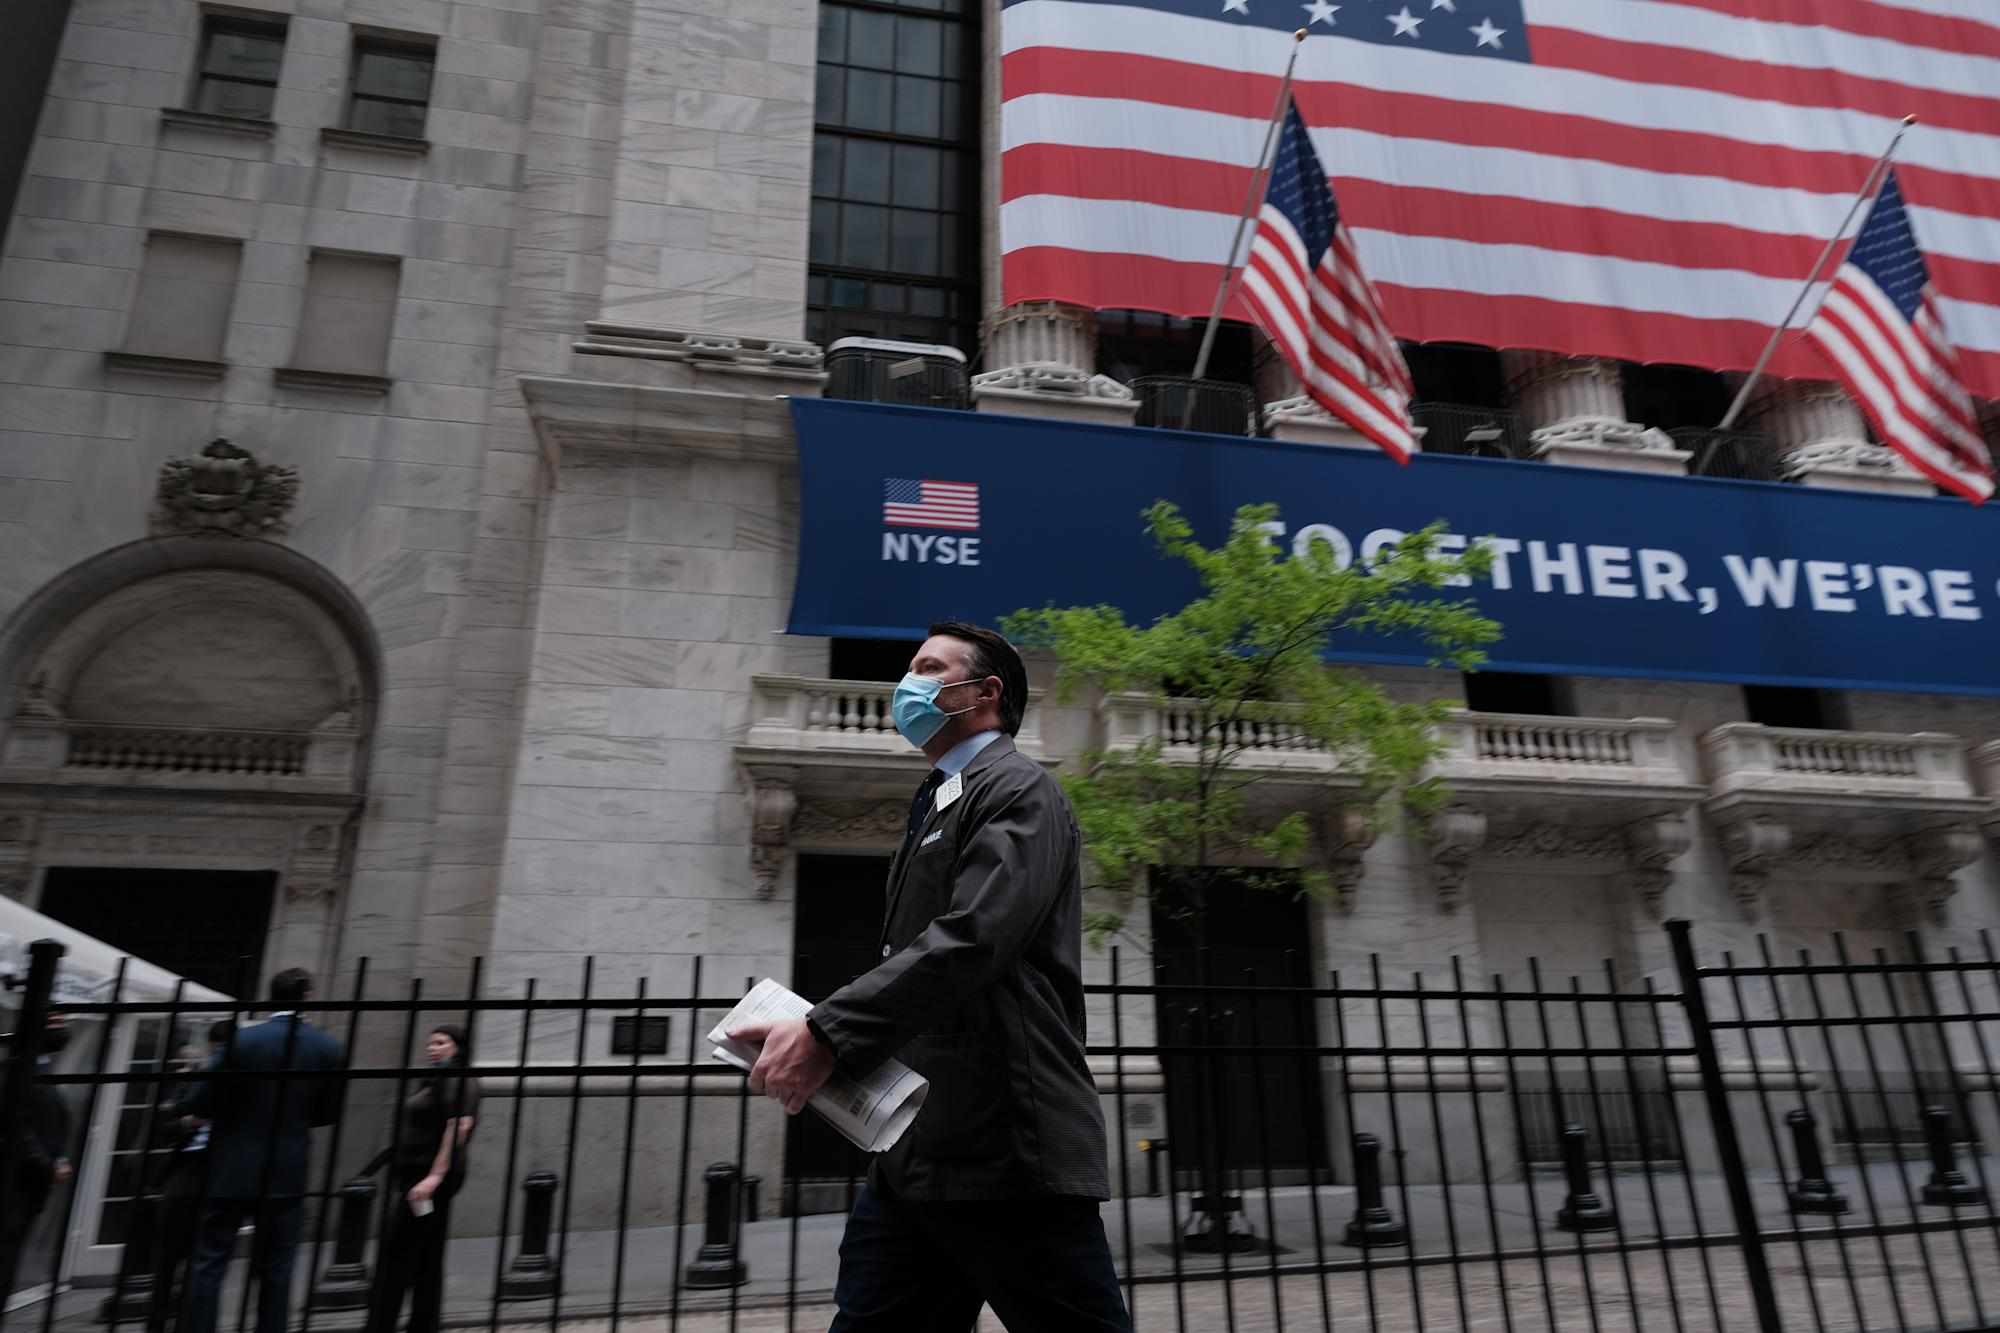 Stock market news live updates: Stocks mostly higher ahead ...